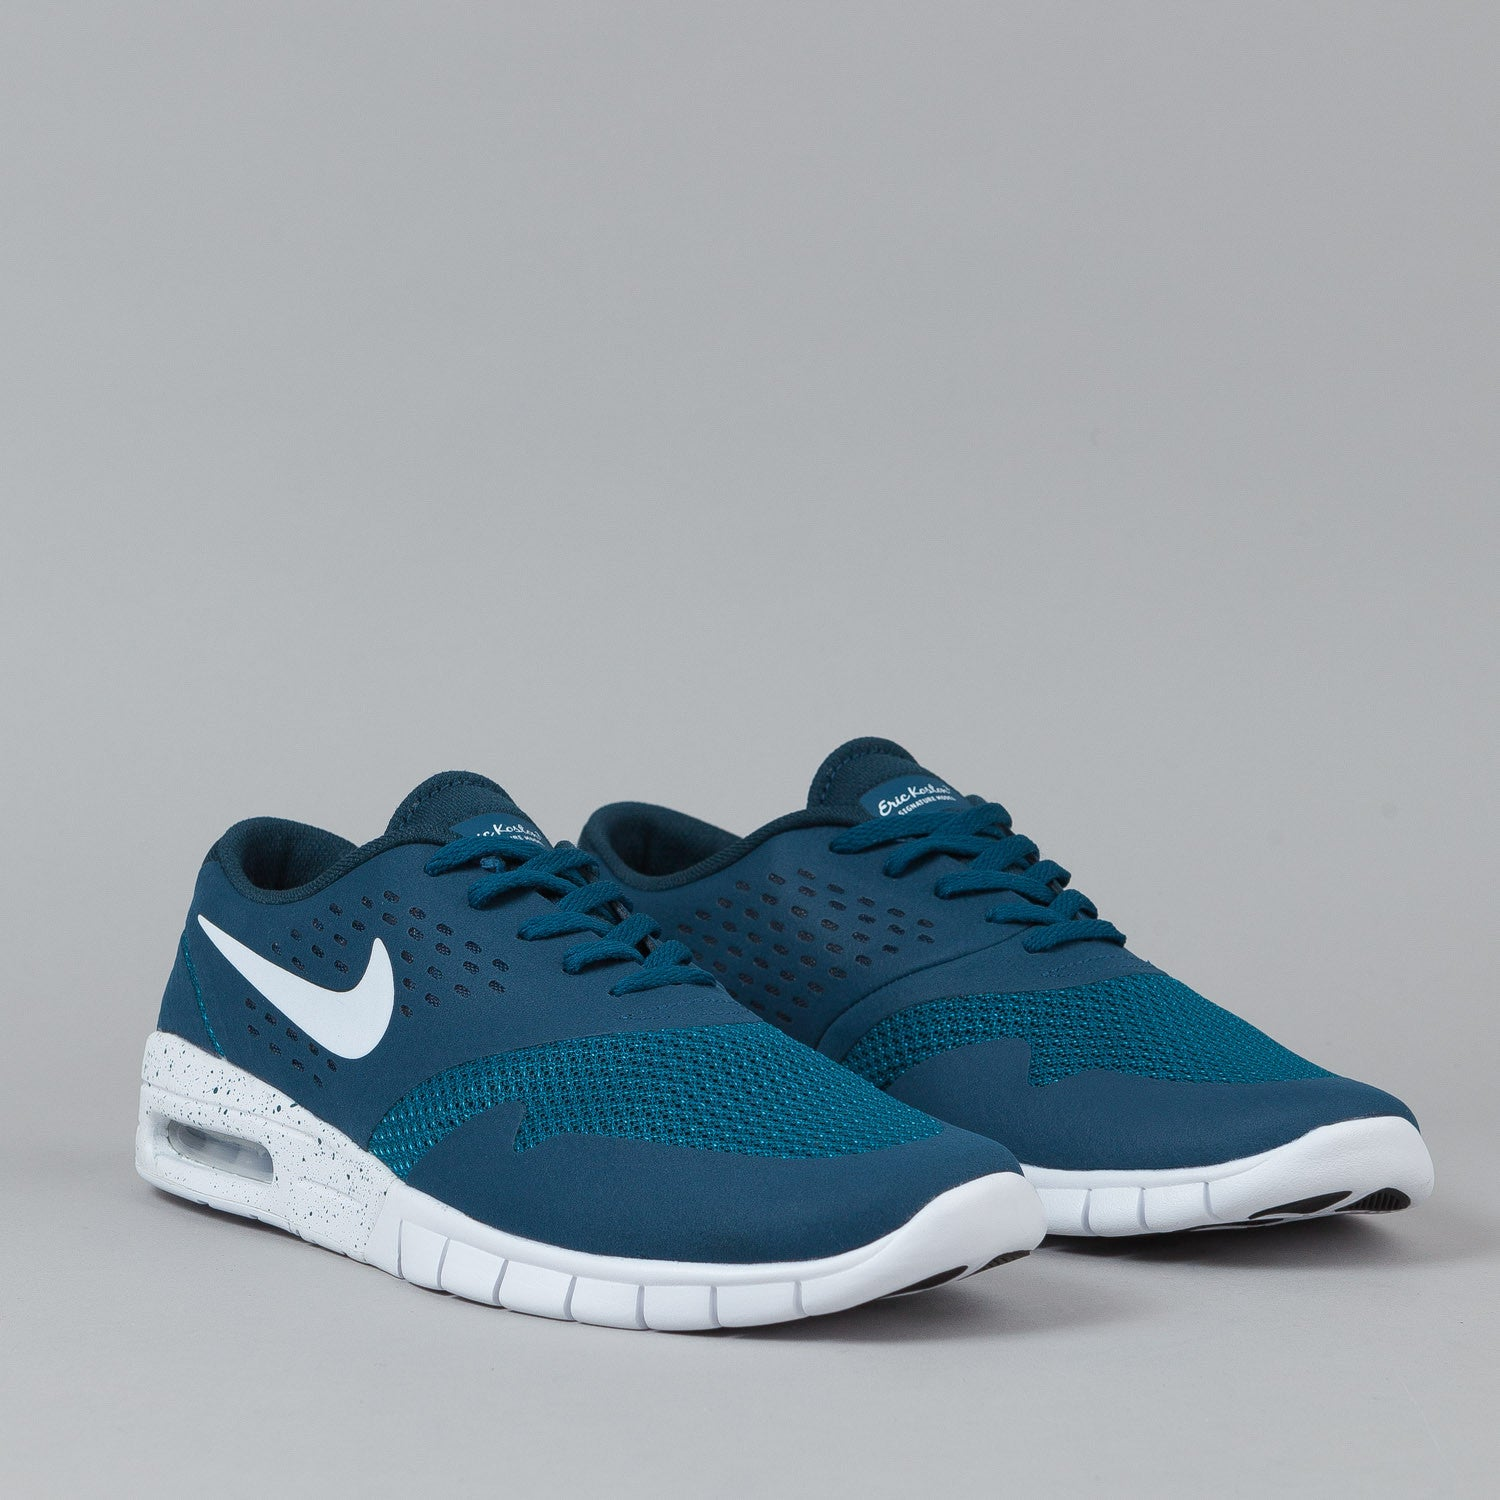 Nike SB Eric Koston 2 Max Shoes Blue Force / White | Flatspot